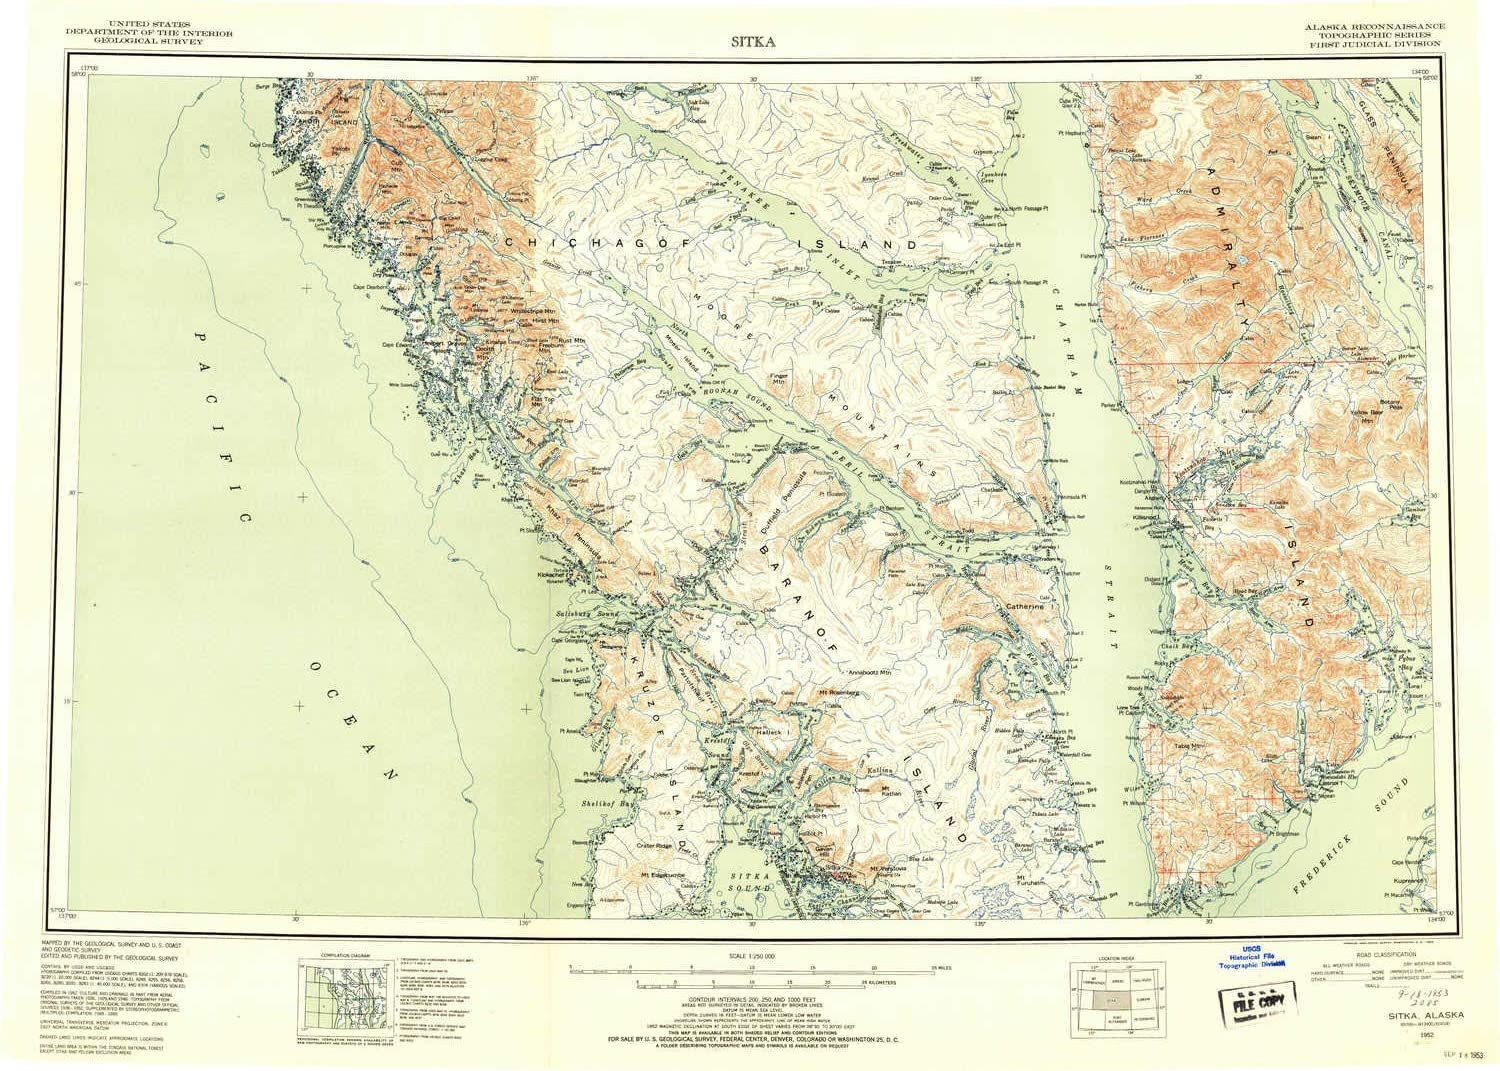 1952 Updated 1953 22.5 x 31.5 in 1 X 2 Degree Historical YellowMaps Sitka AK topo map 1:250000 Scale